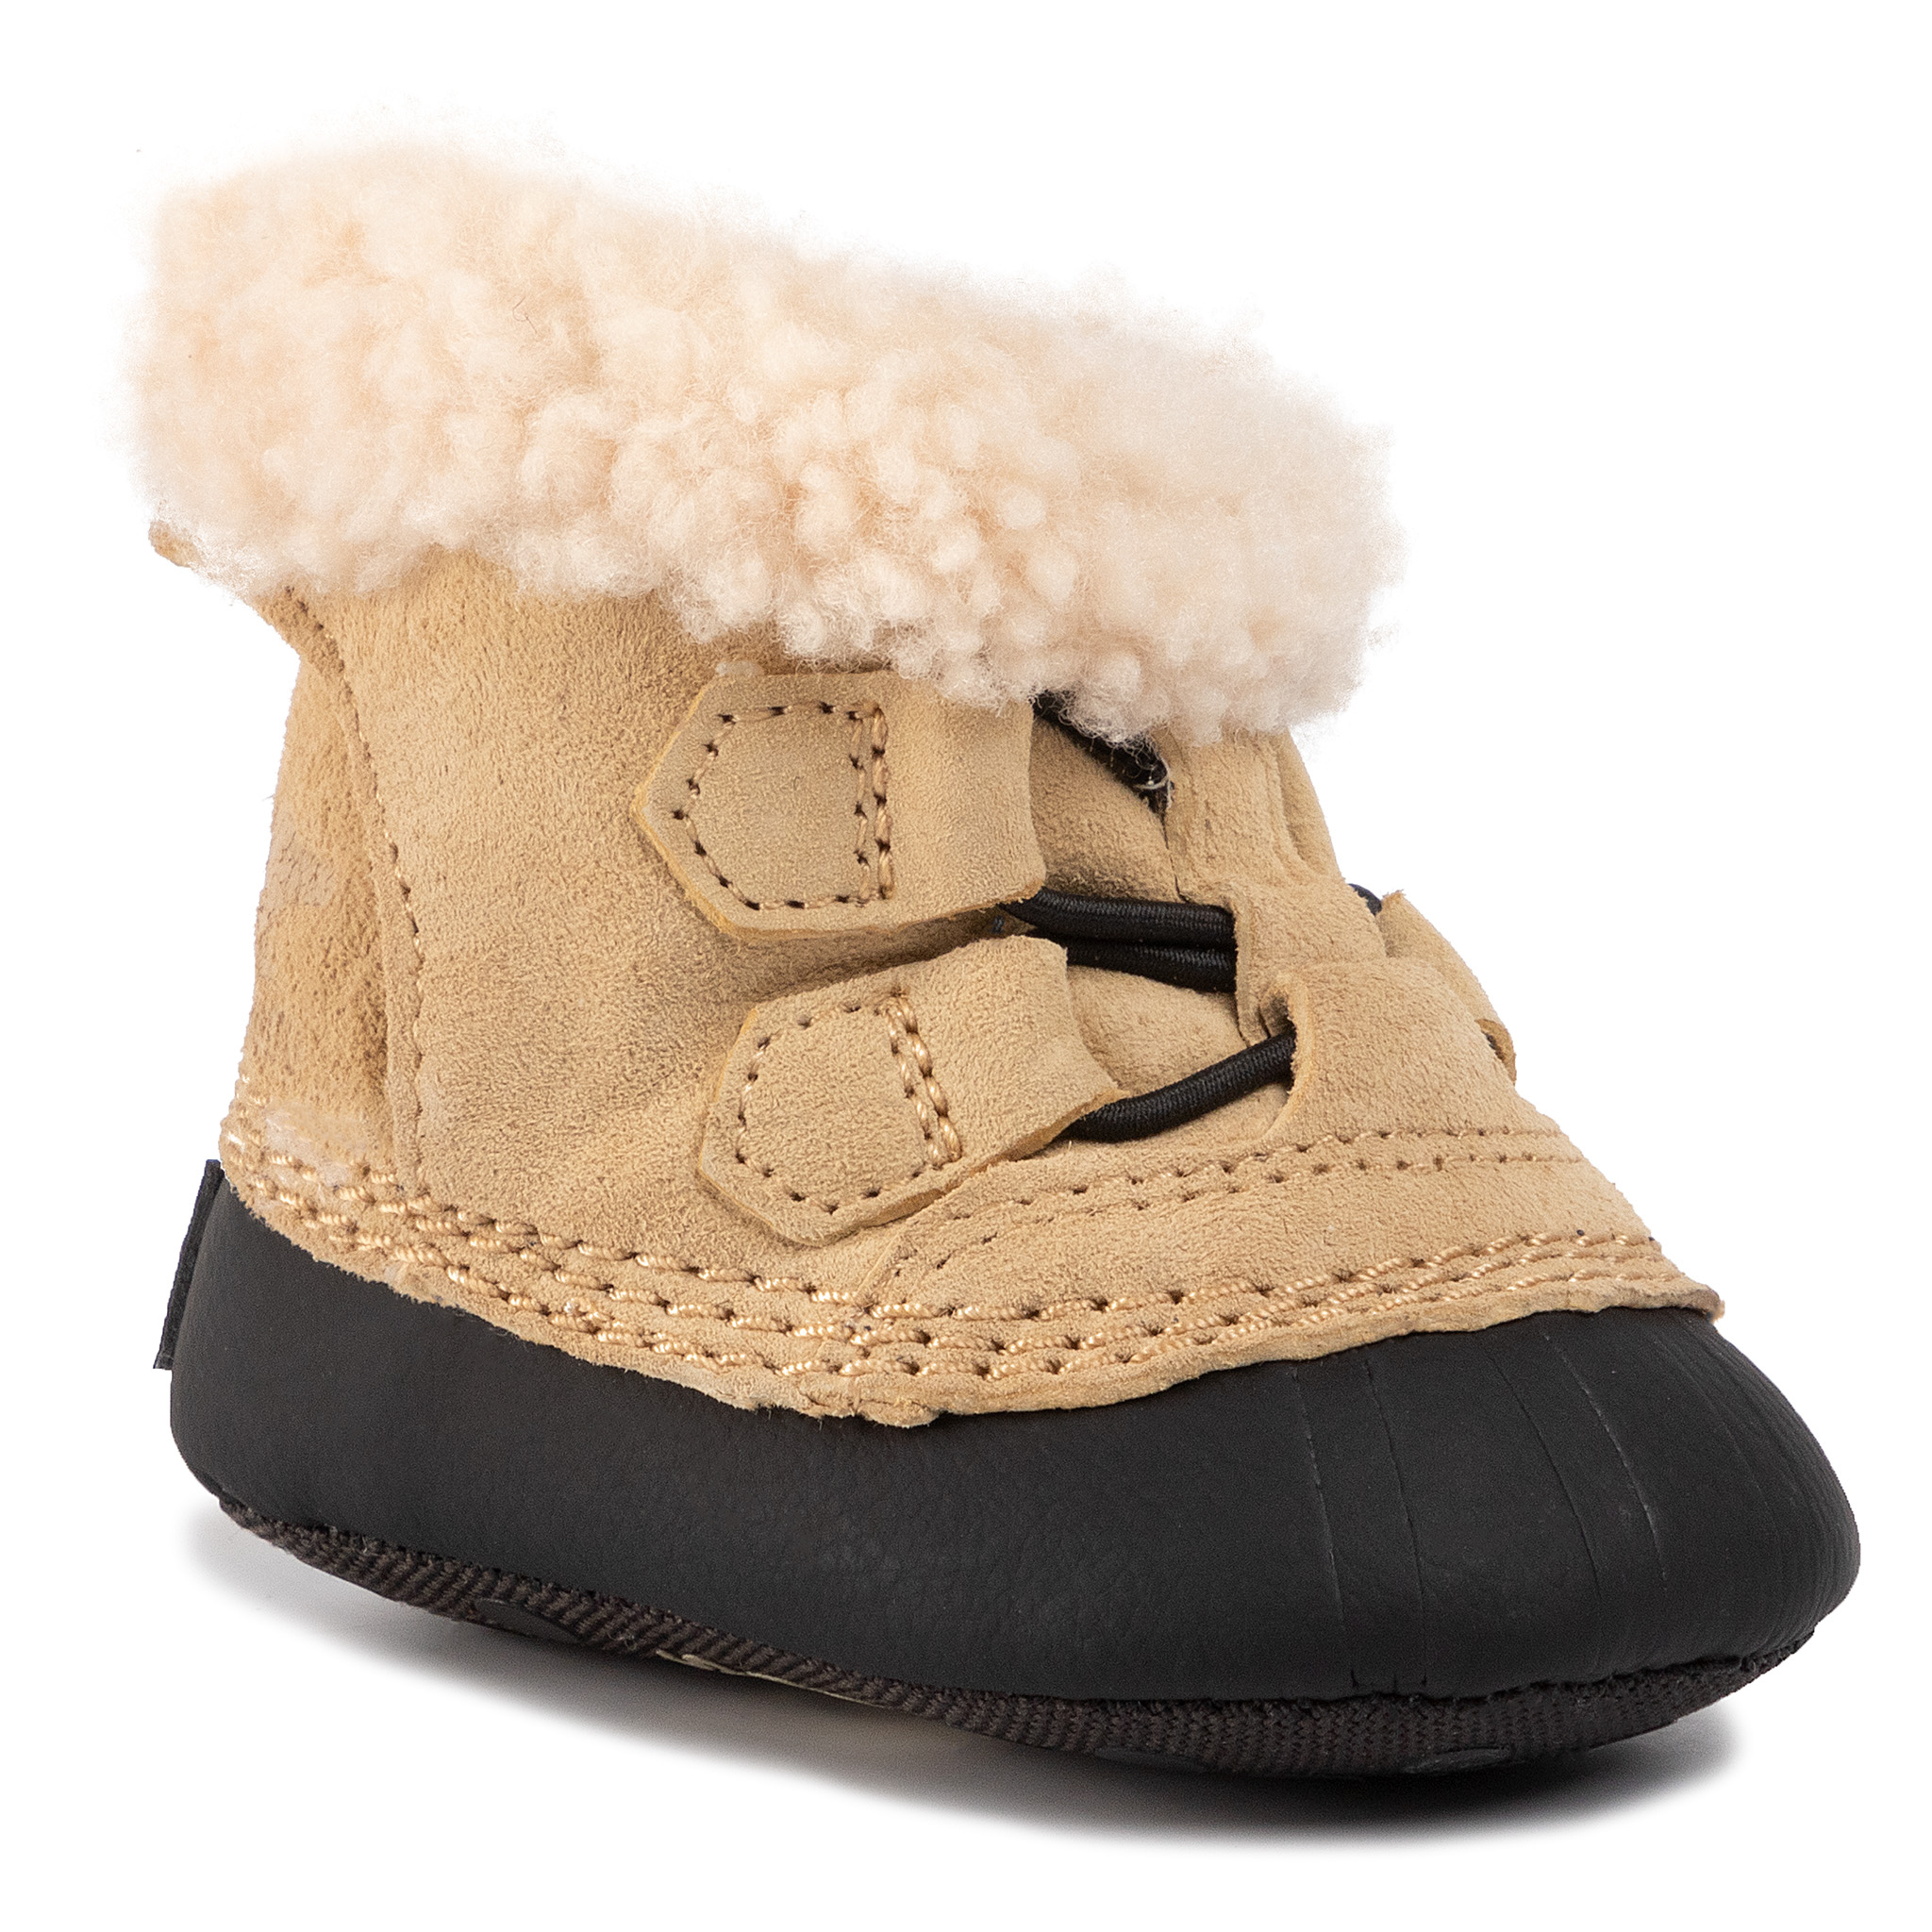 Cizme Sorel - Caribootie Ii Nn1937 Curry/Black 373 imagine epantofi.ro 2021